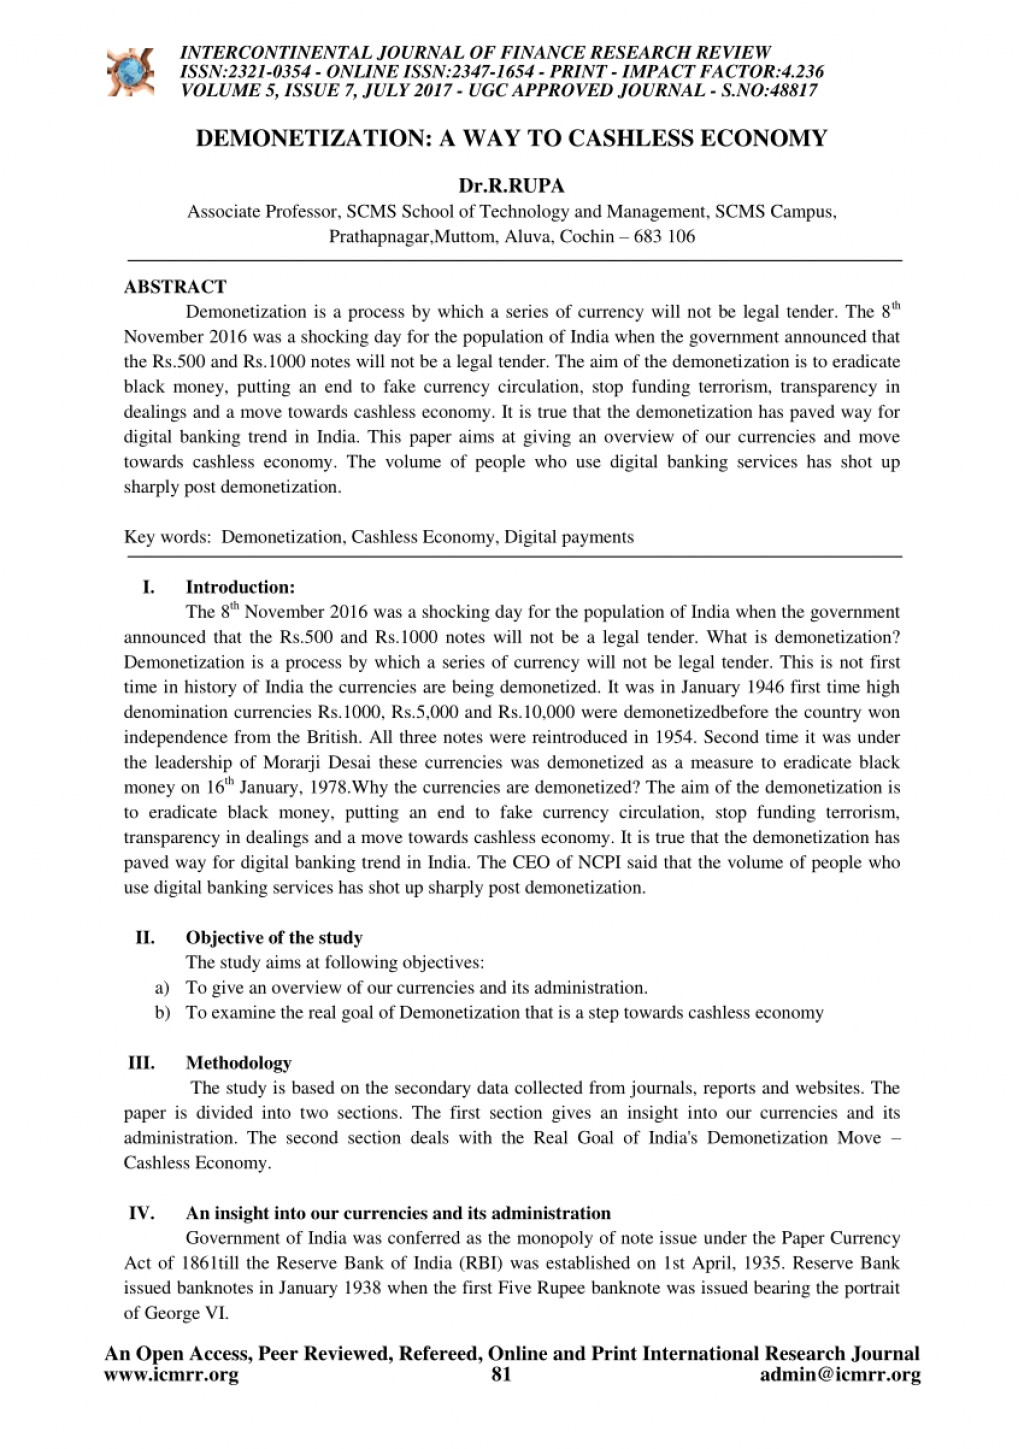 001 Cashless Economy Research Paper Frightening Cash To Papers Pdf Large